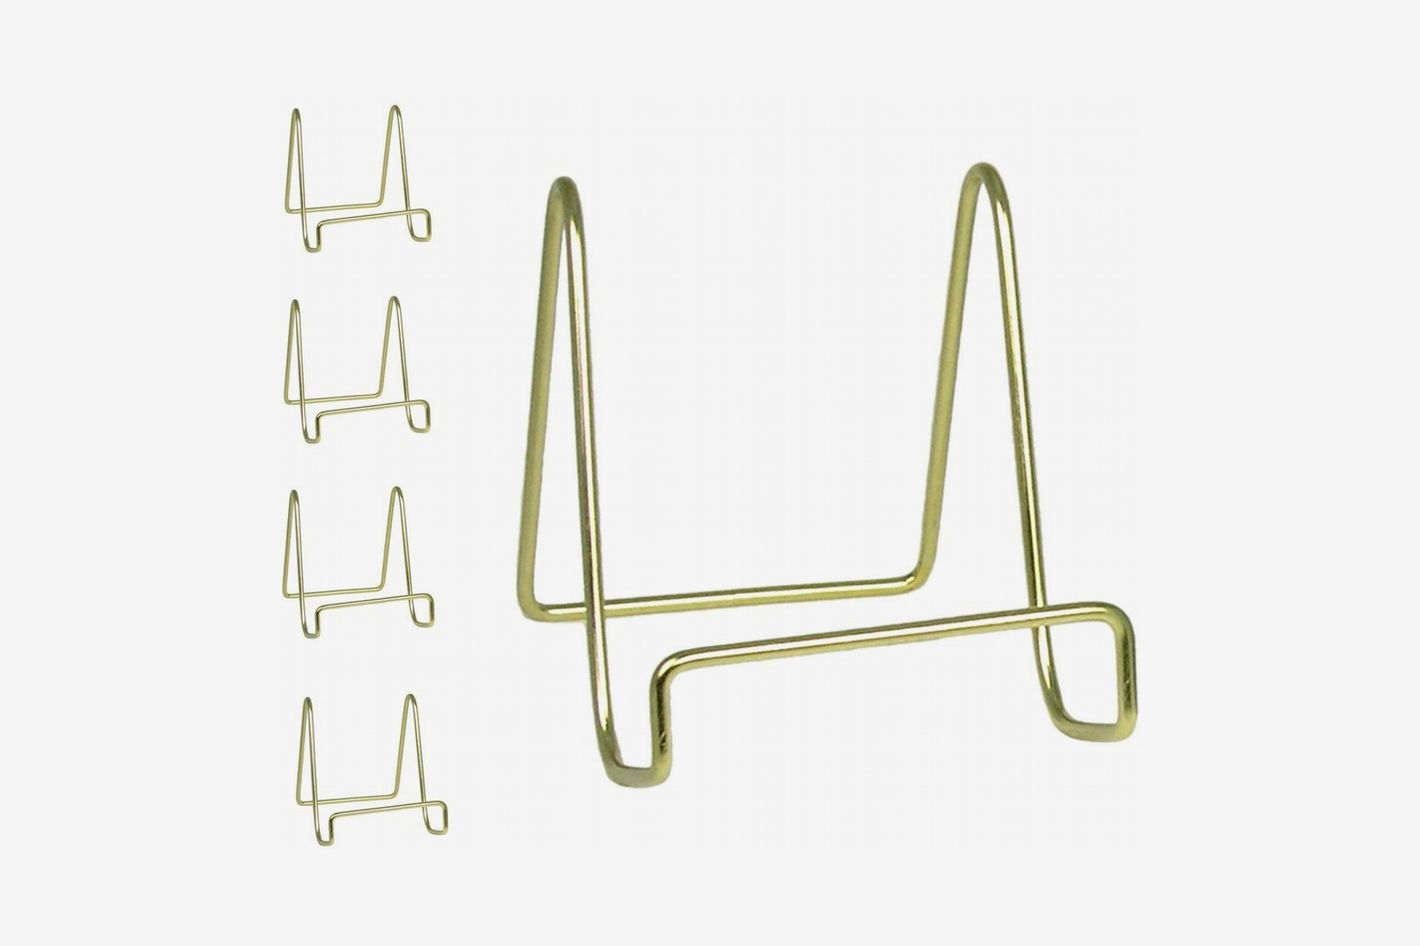 Banberry Designs Wire Easel Display Stand Plate Holders - Smooth Brass Metal - 4 Inch - Set of 5